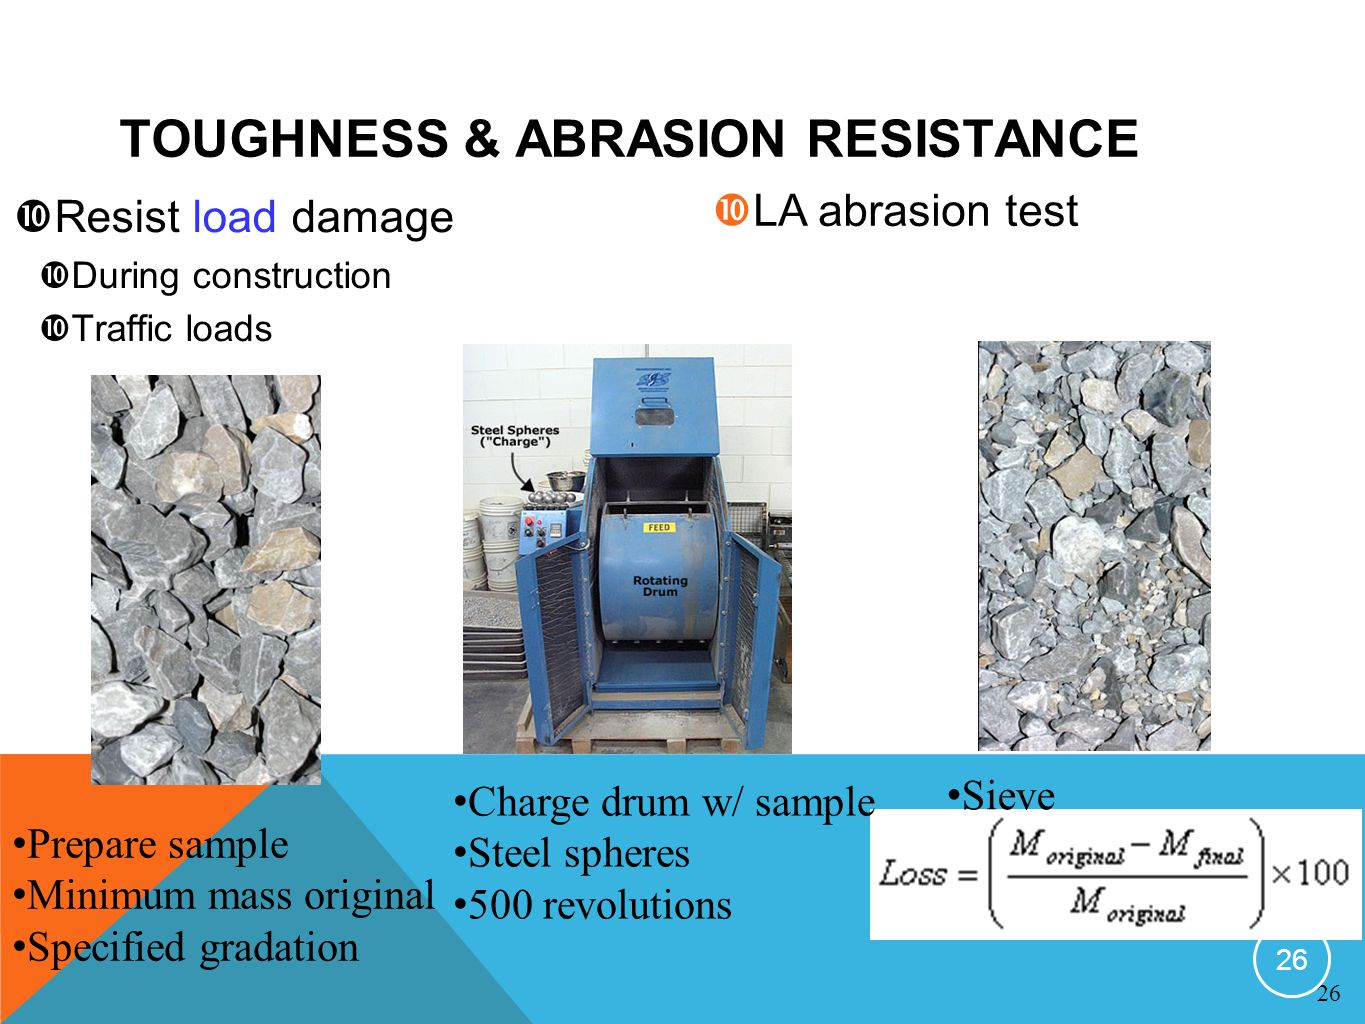 TOUGHNESS & ABRASION RESISTANCE